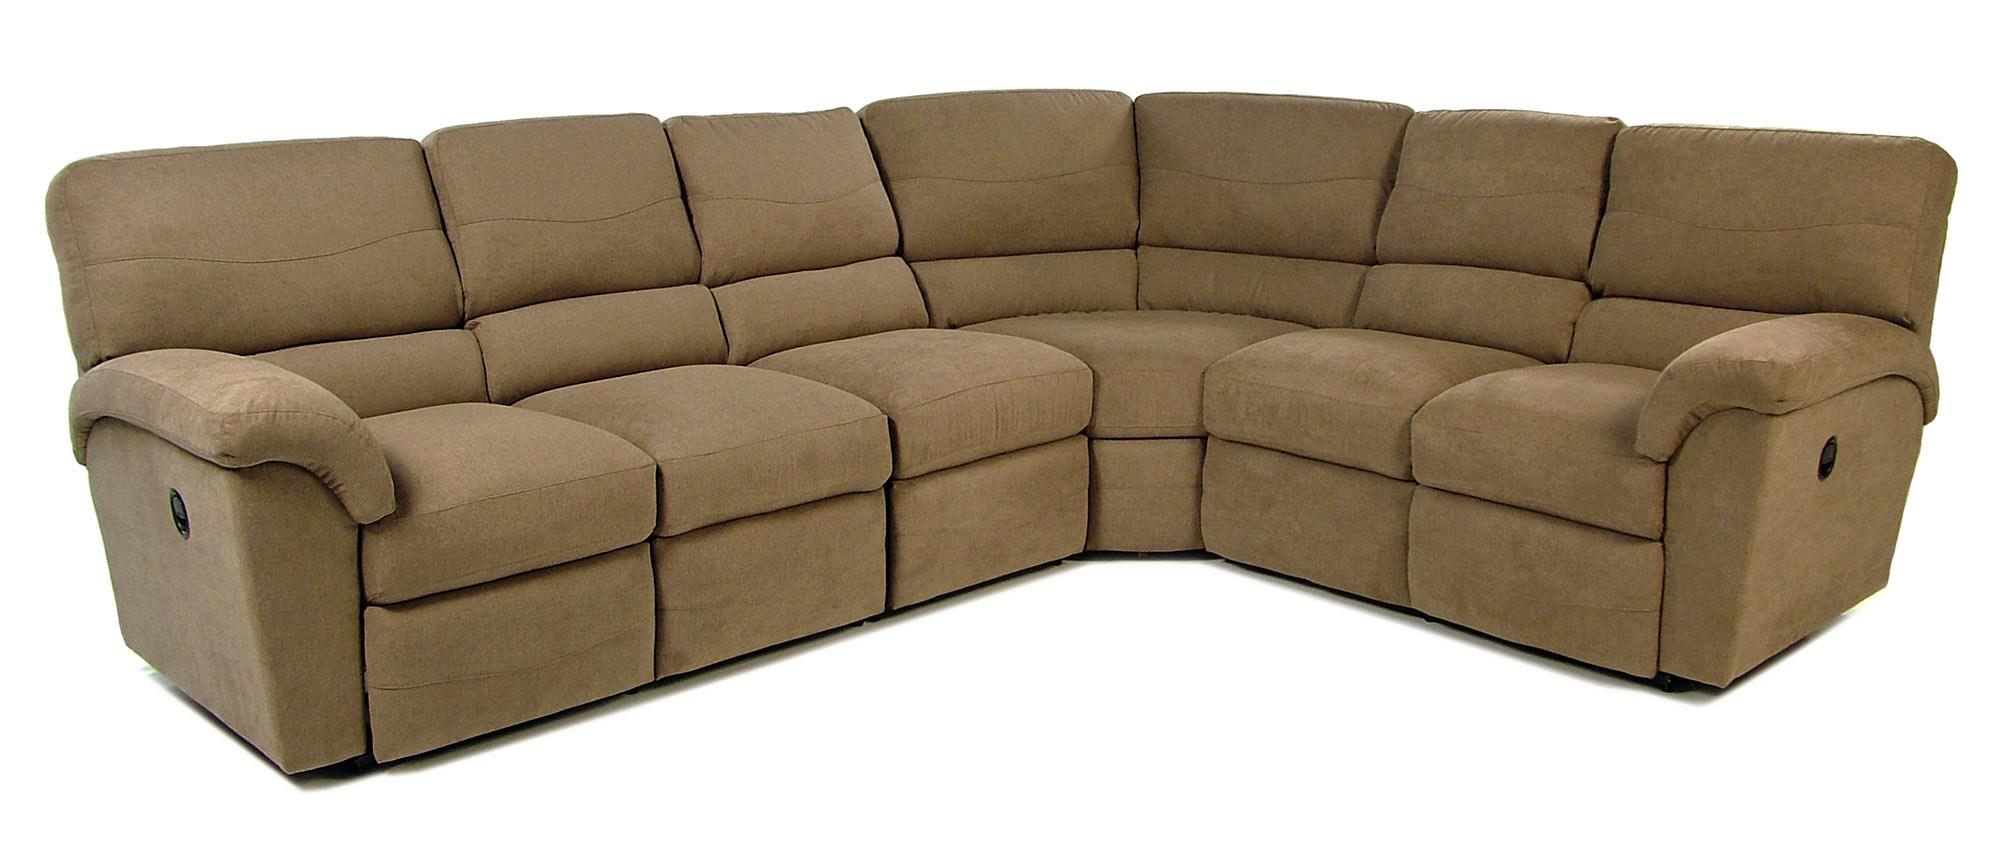 4PC Reclining Sectional